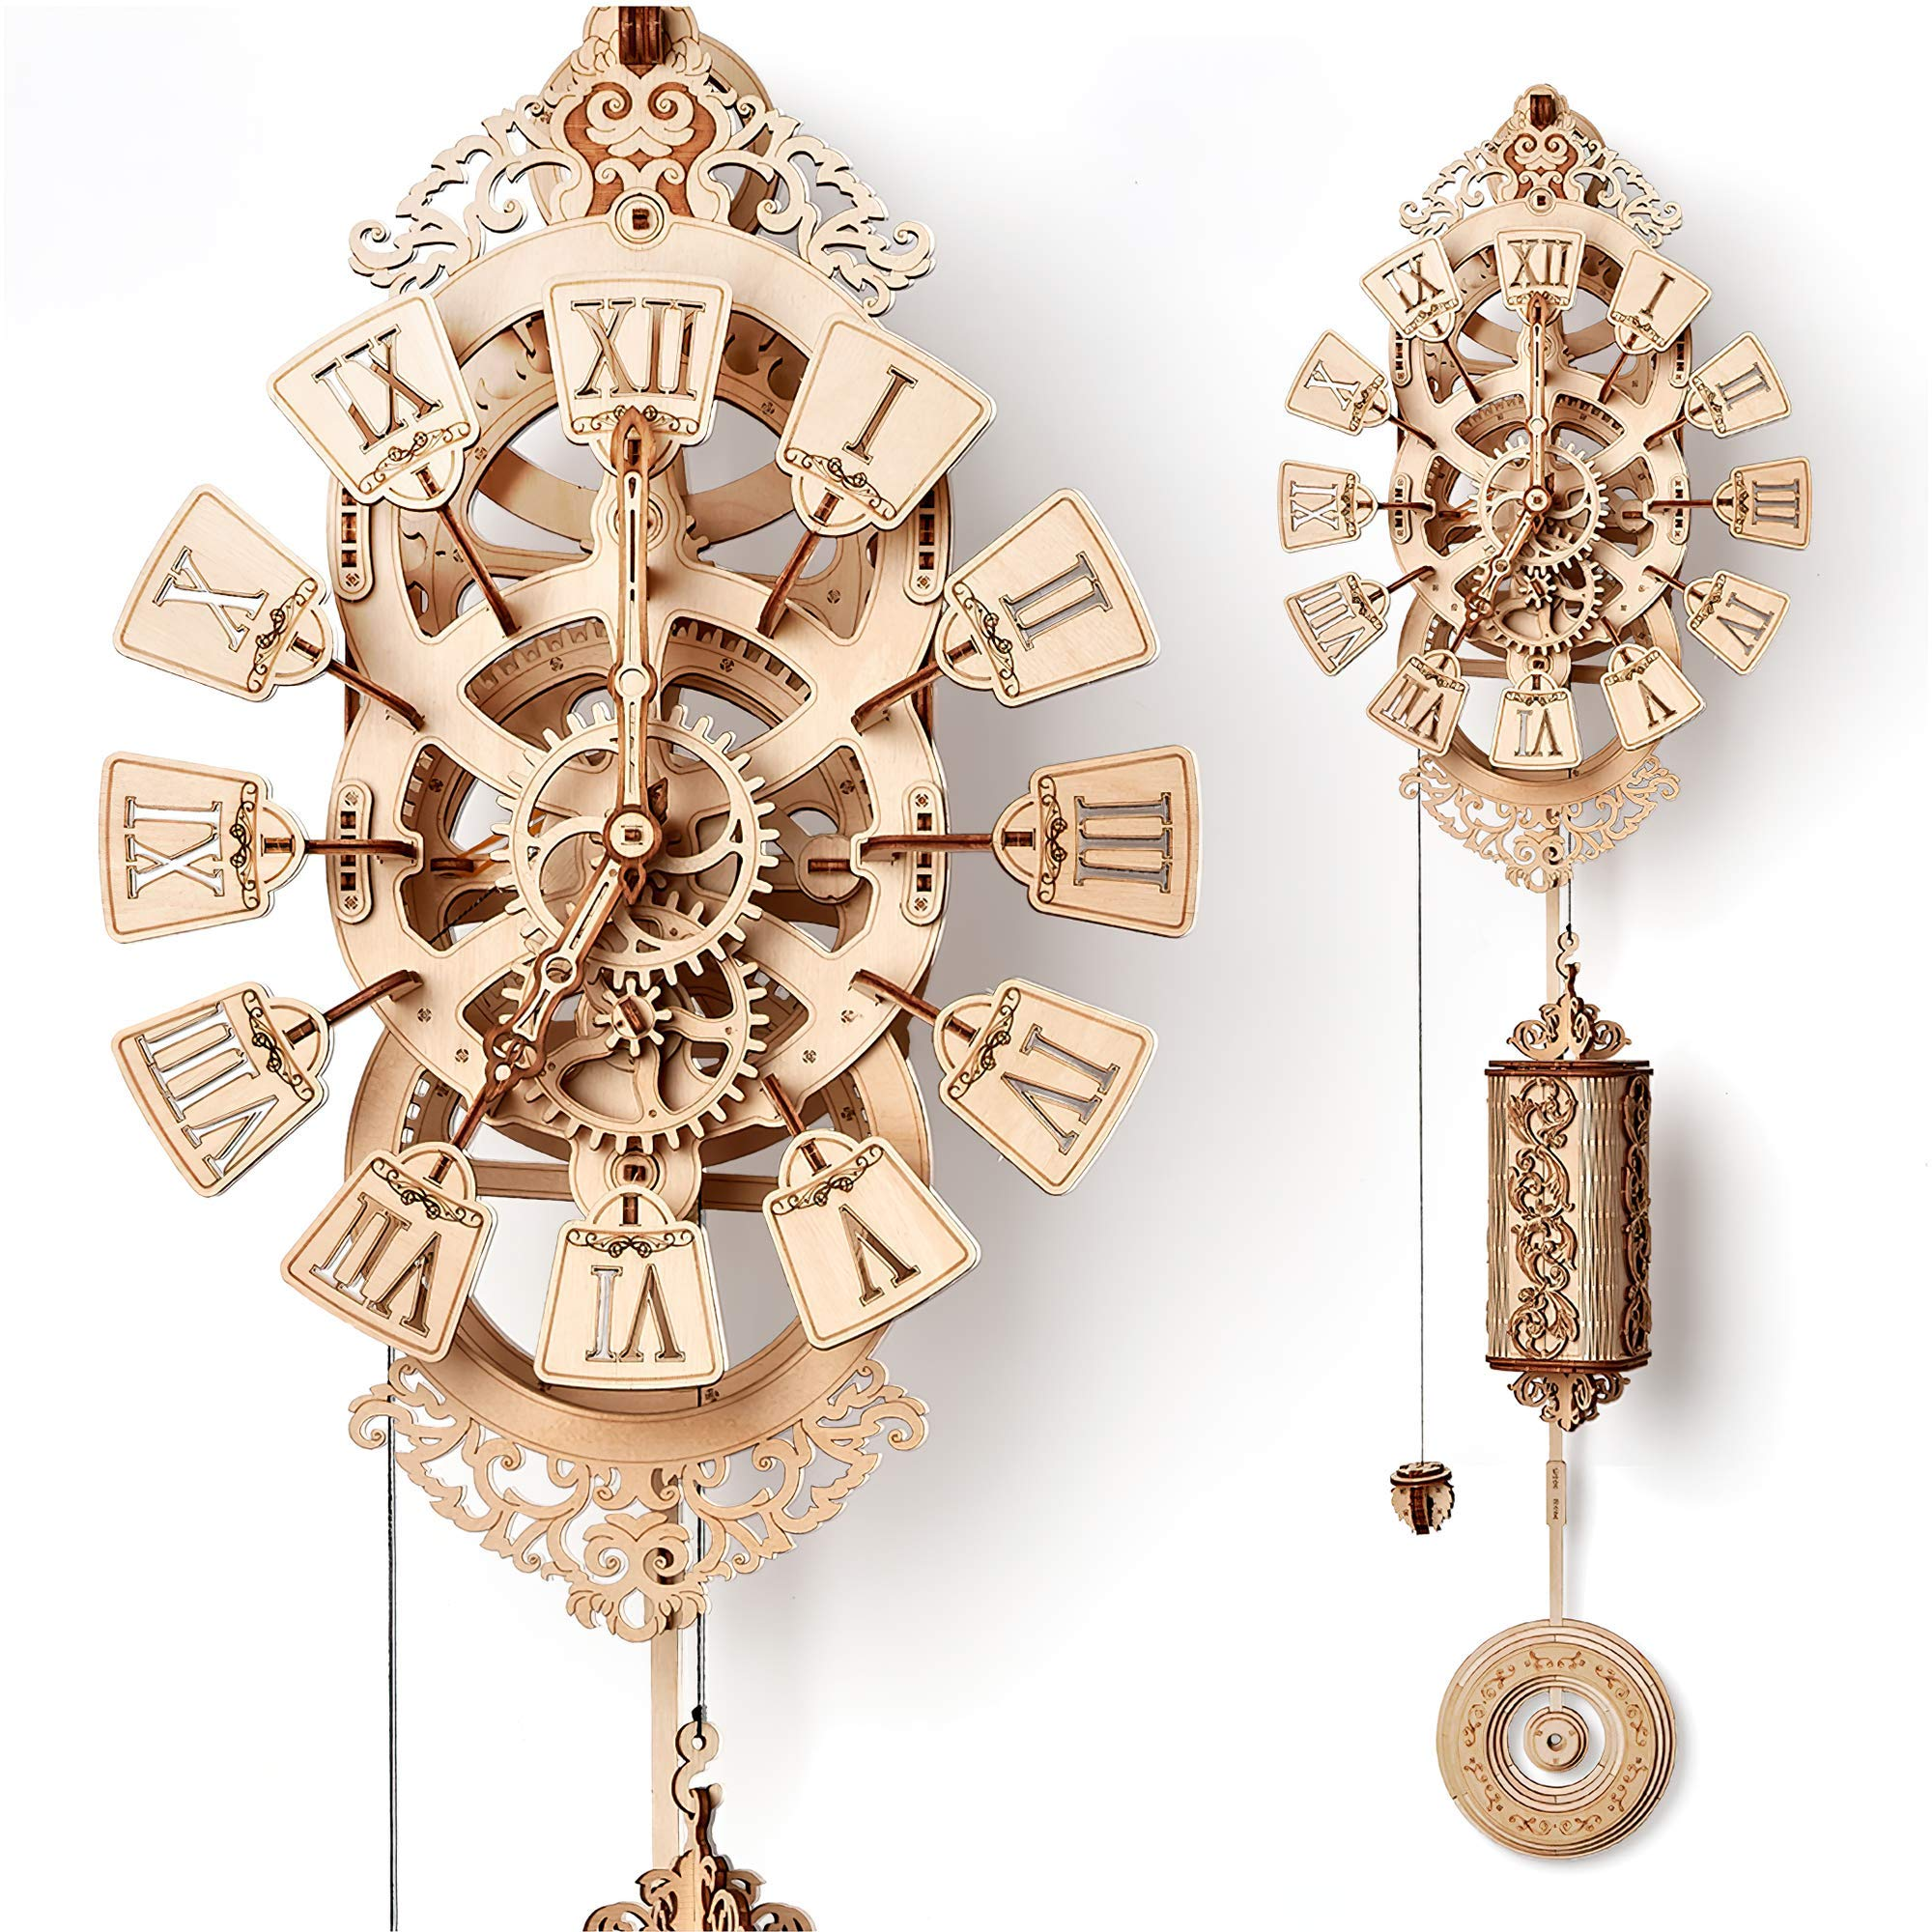 Wood Trick Pendulum Wall Clock Kit, Wooden DIY Wall Clock Big - No Batteries - 3D Wooden Puzzle, Brain Teaser for Adults and Kids - 3D Wall Clock Mechanical Model by Wood Trick